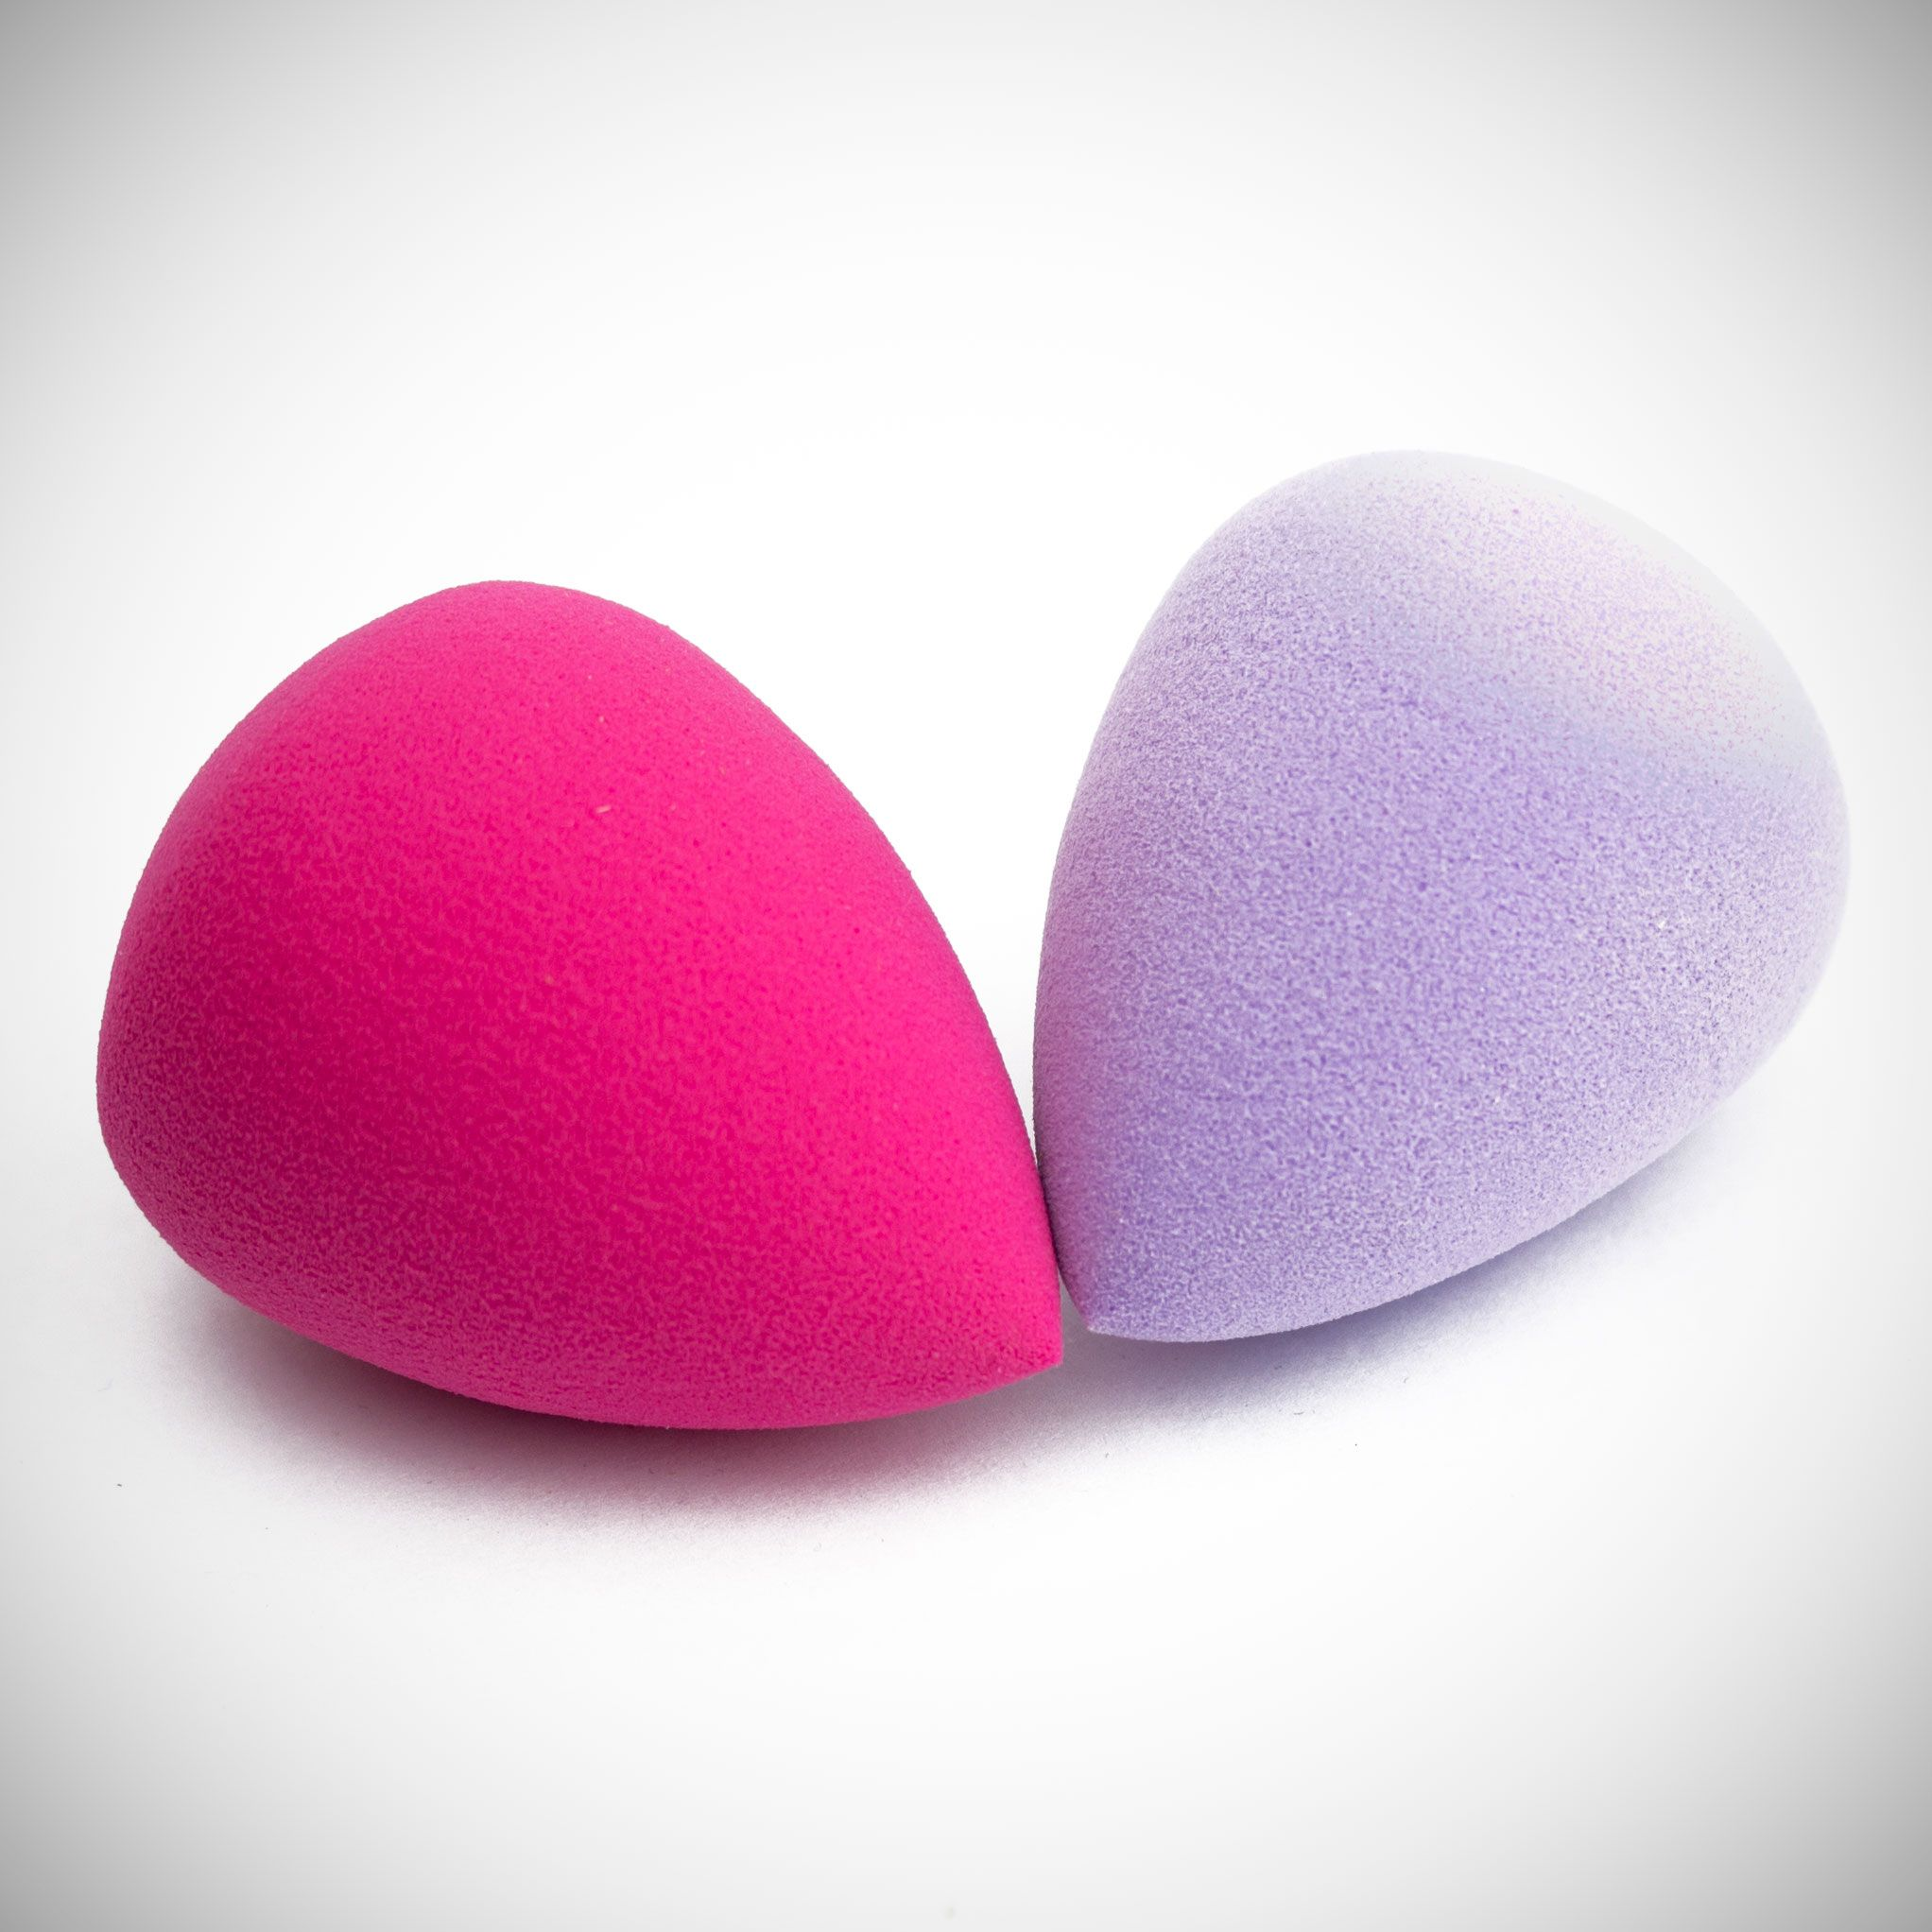 Beautyblender Body Blender Beauty blender, Black beauty